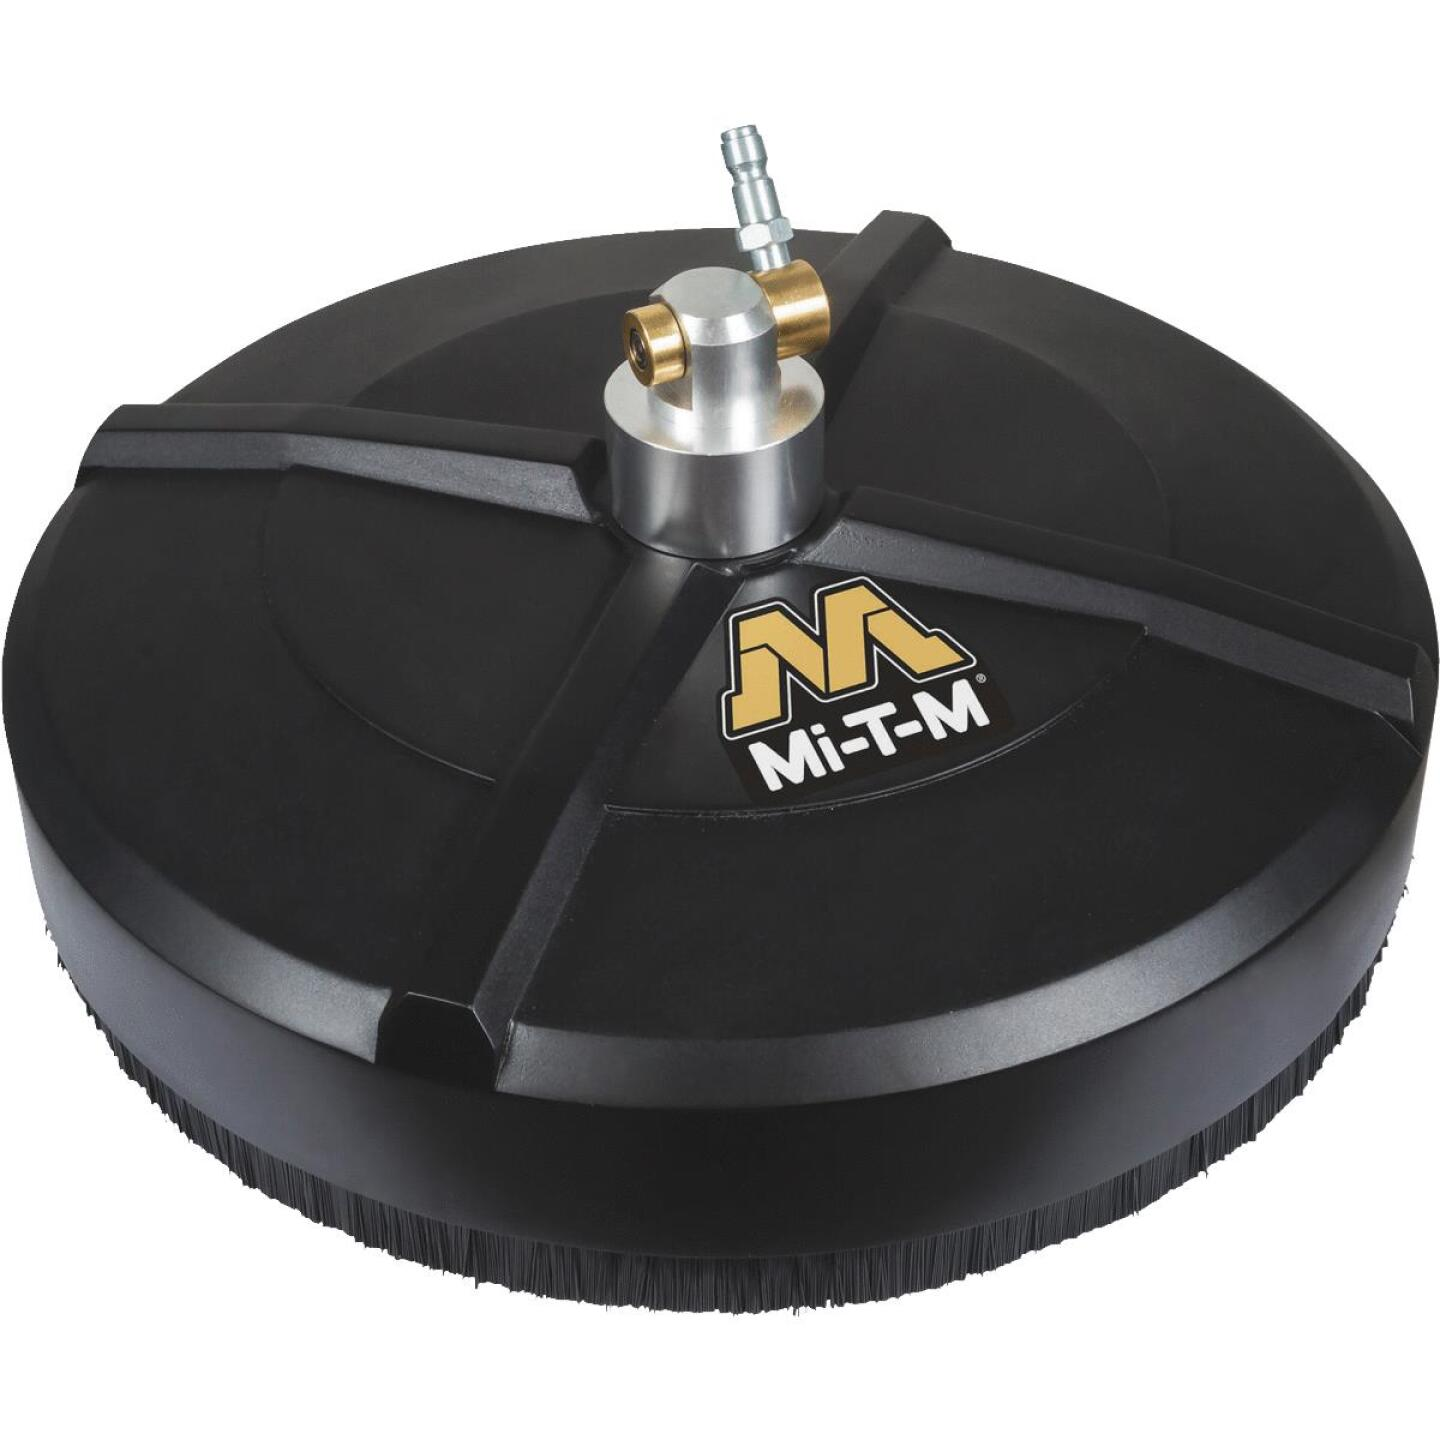 Mi-T-M 14 In. Rotary Surface Cleaner for Gas Pressure Washer with Quick Connect Plug Image 1